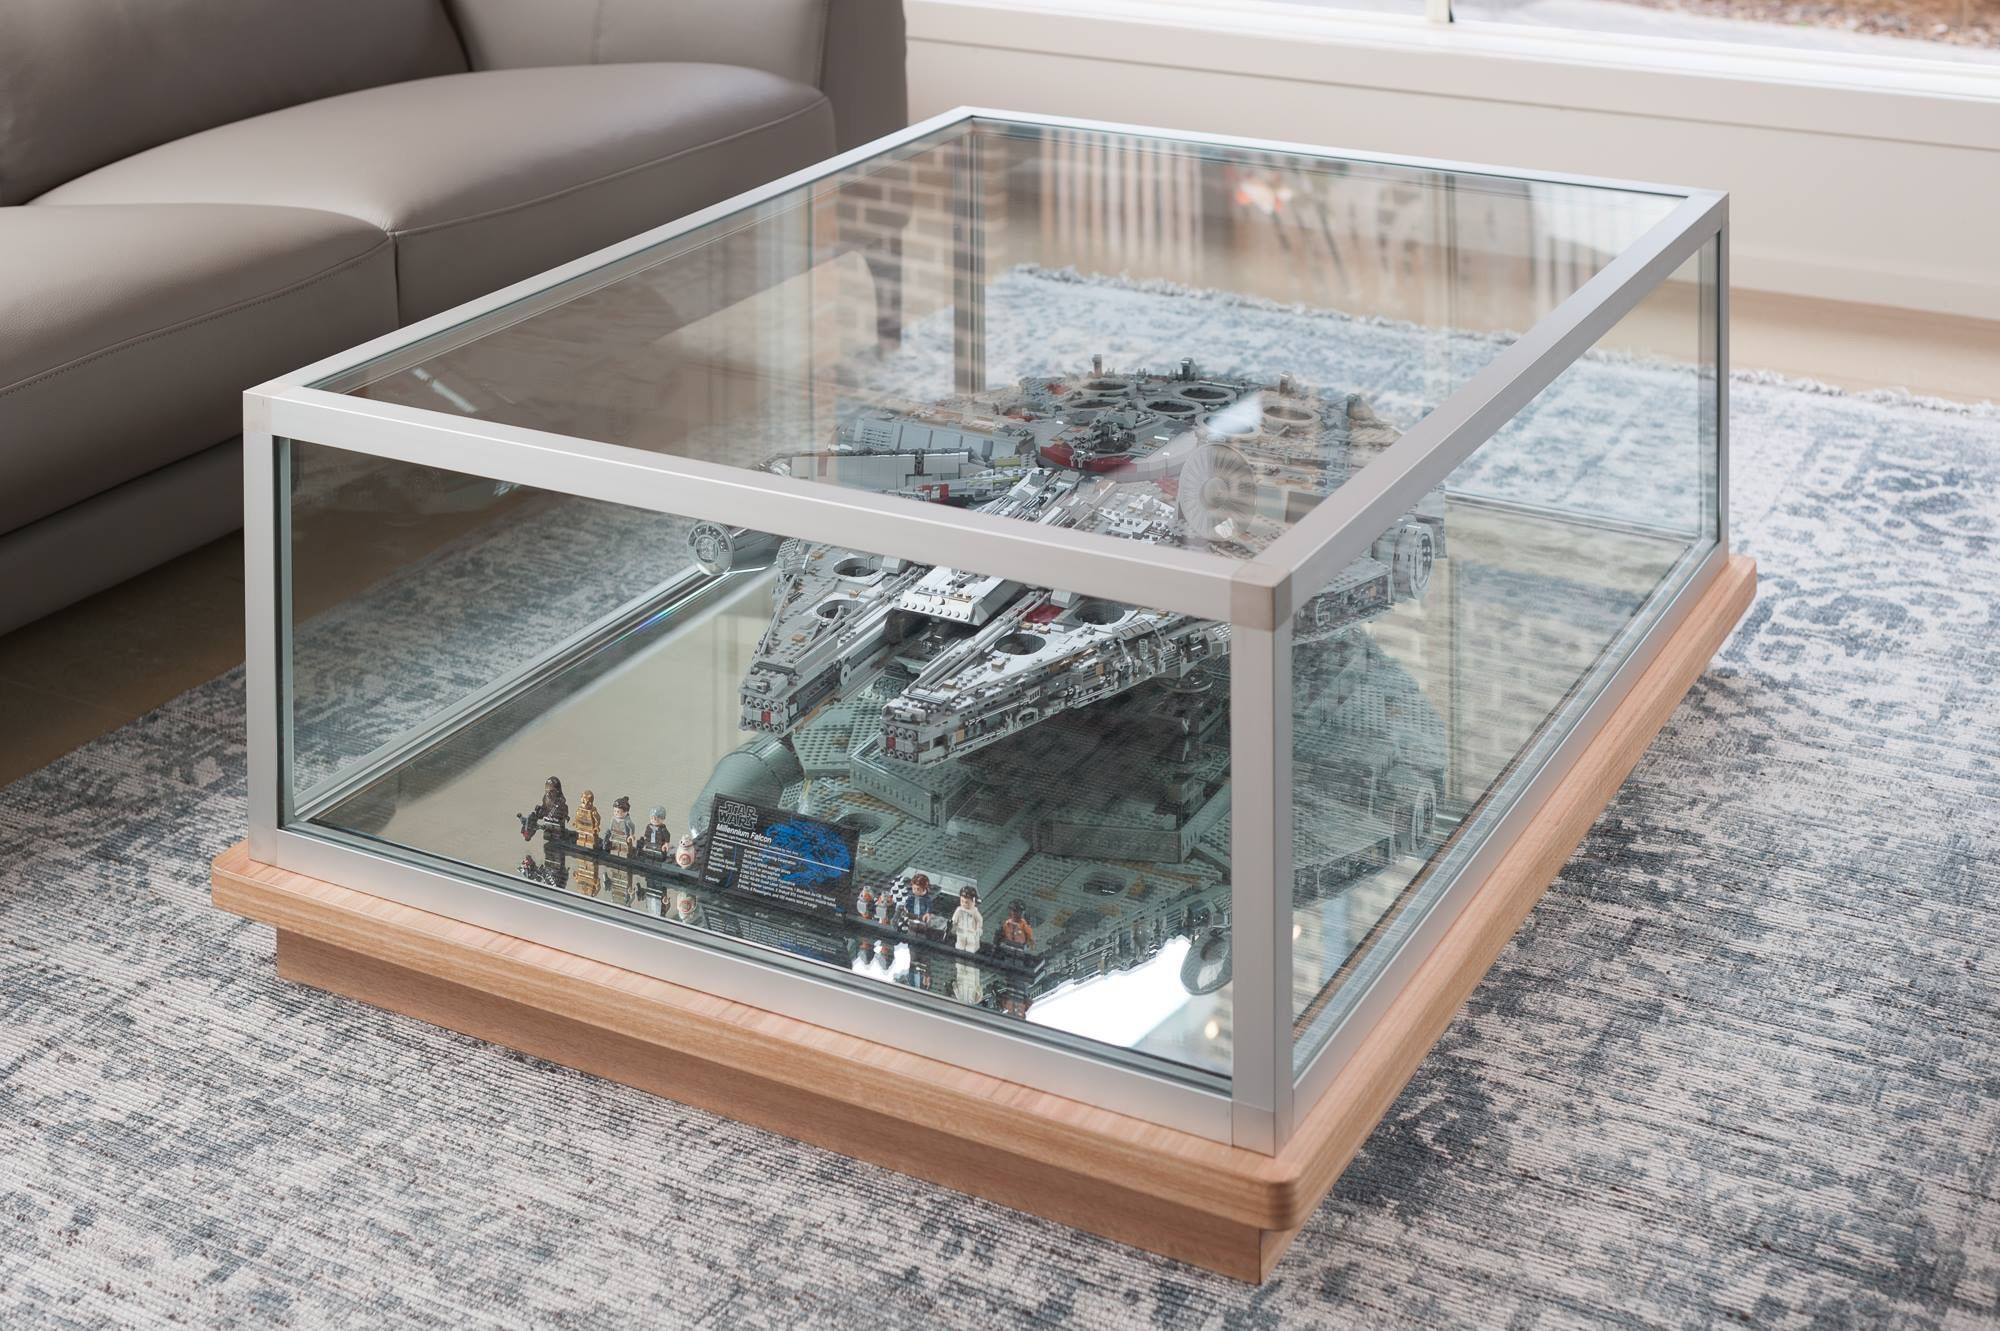 Custom Fitted Timber And Glass Coffee Table With Lego Display Custommadefurniture Cmfurnituredesign Custommadec Coffee Table Custom Made Furniture Furniture [ 1331 x 2000 Pixel ]